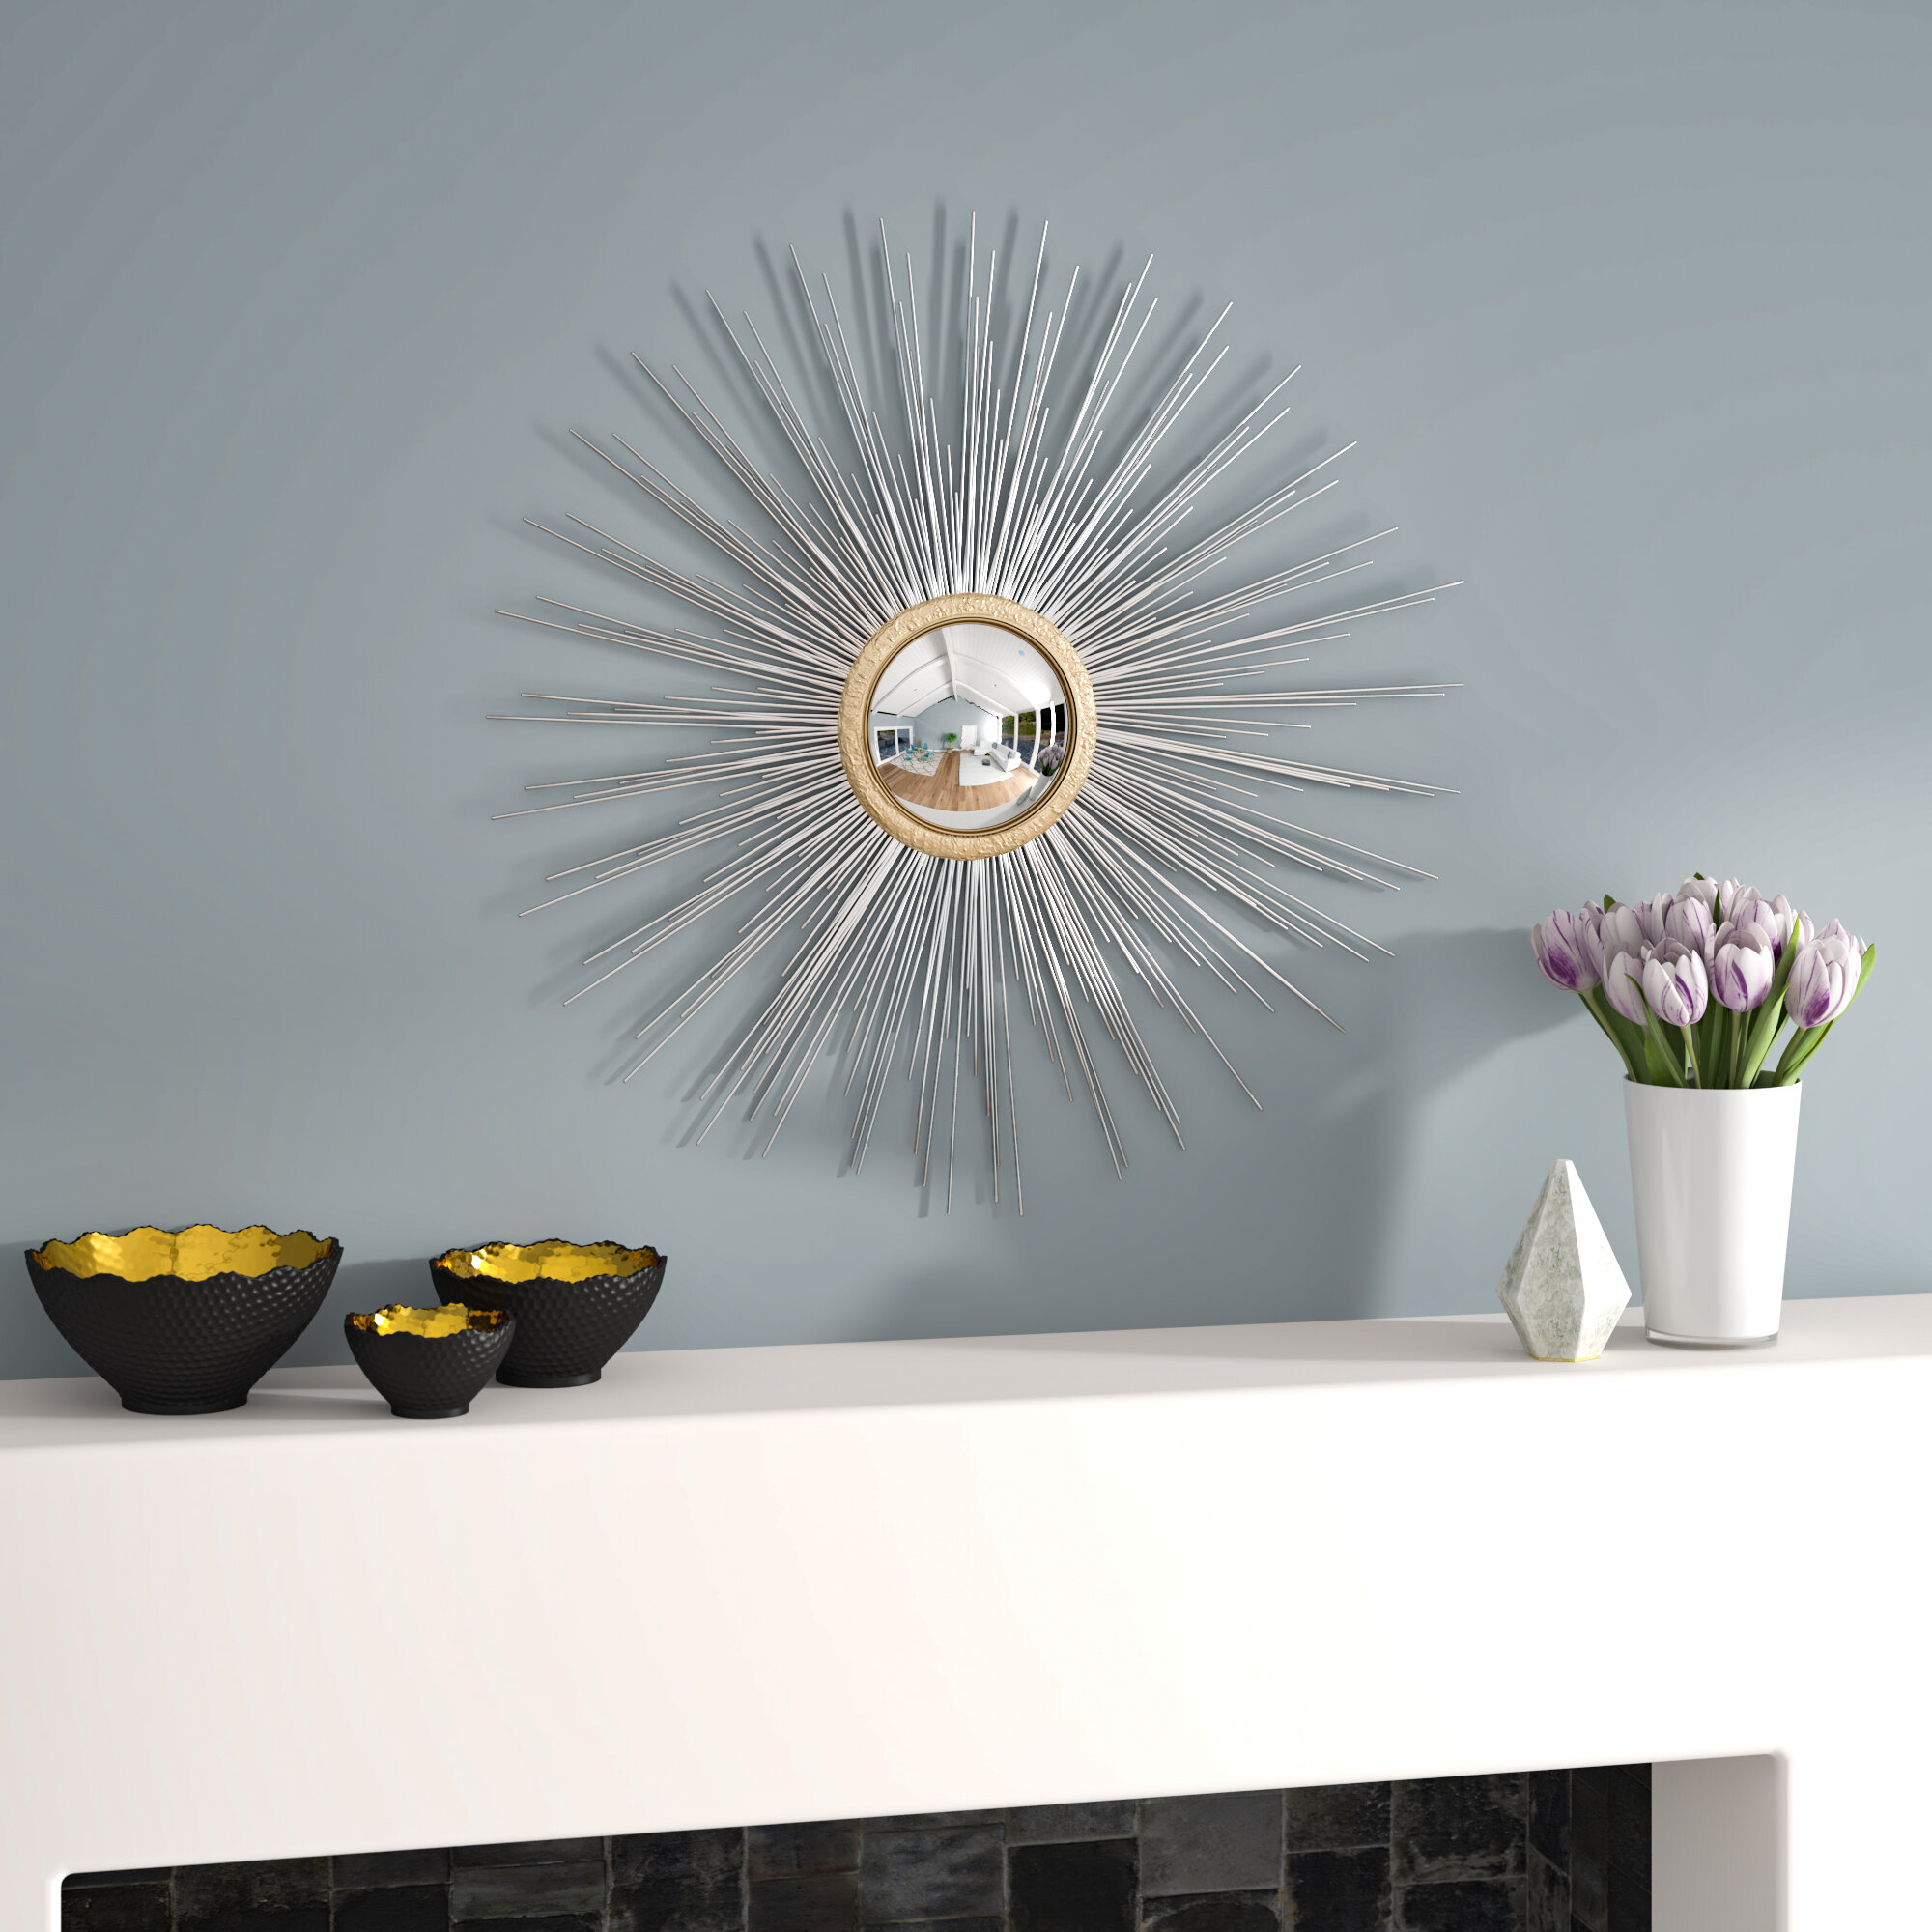 Starburst Sculpture | Wayfair in Set Of 3 Contemporary 6, 9, And 11 Inch Gold Tin Starburst Sculptures (Image 23 of 30)